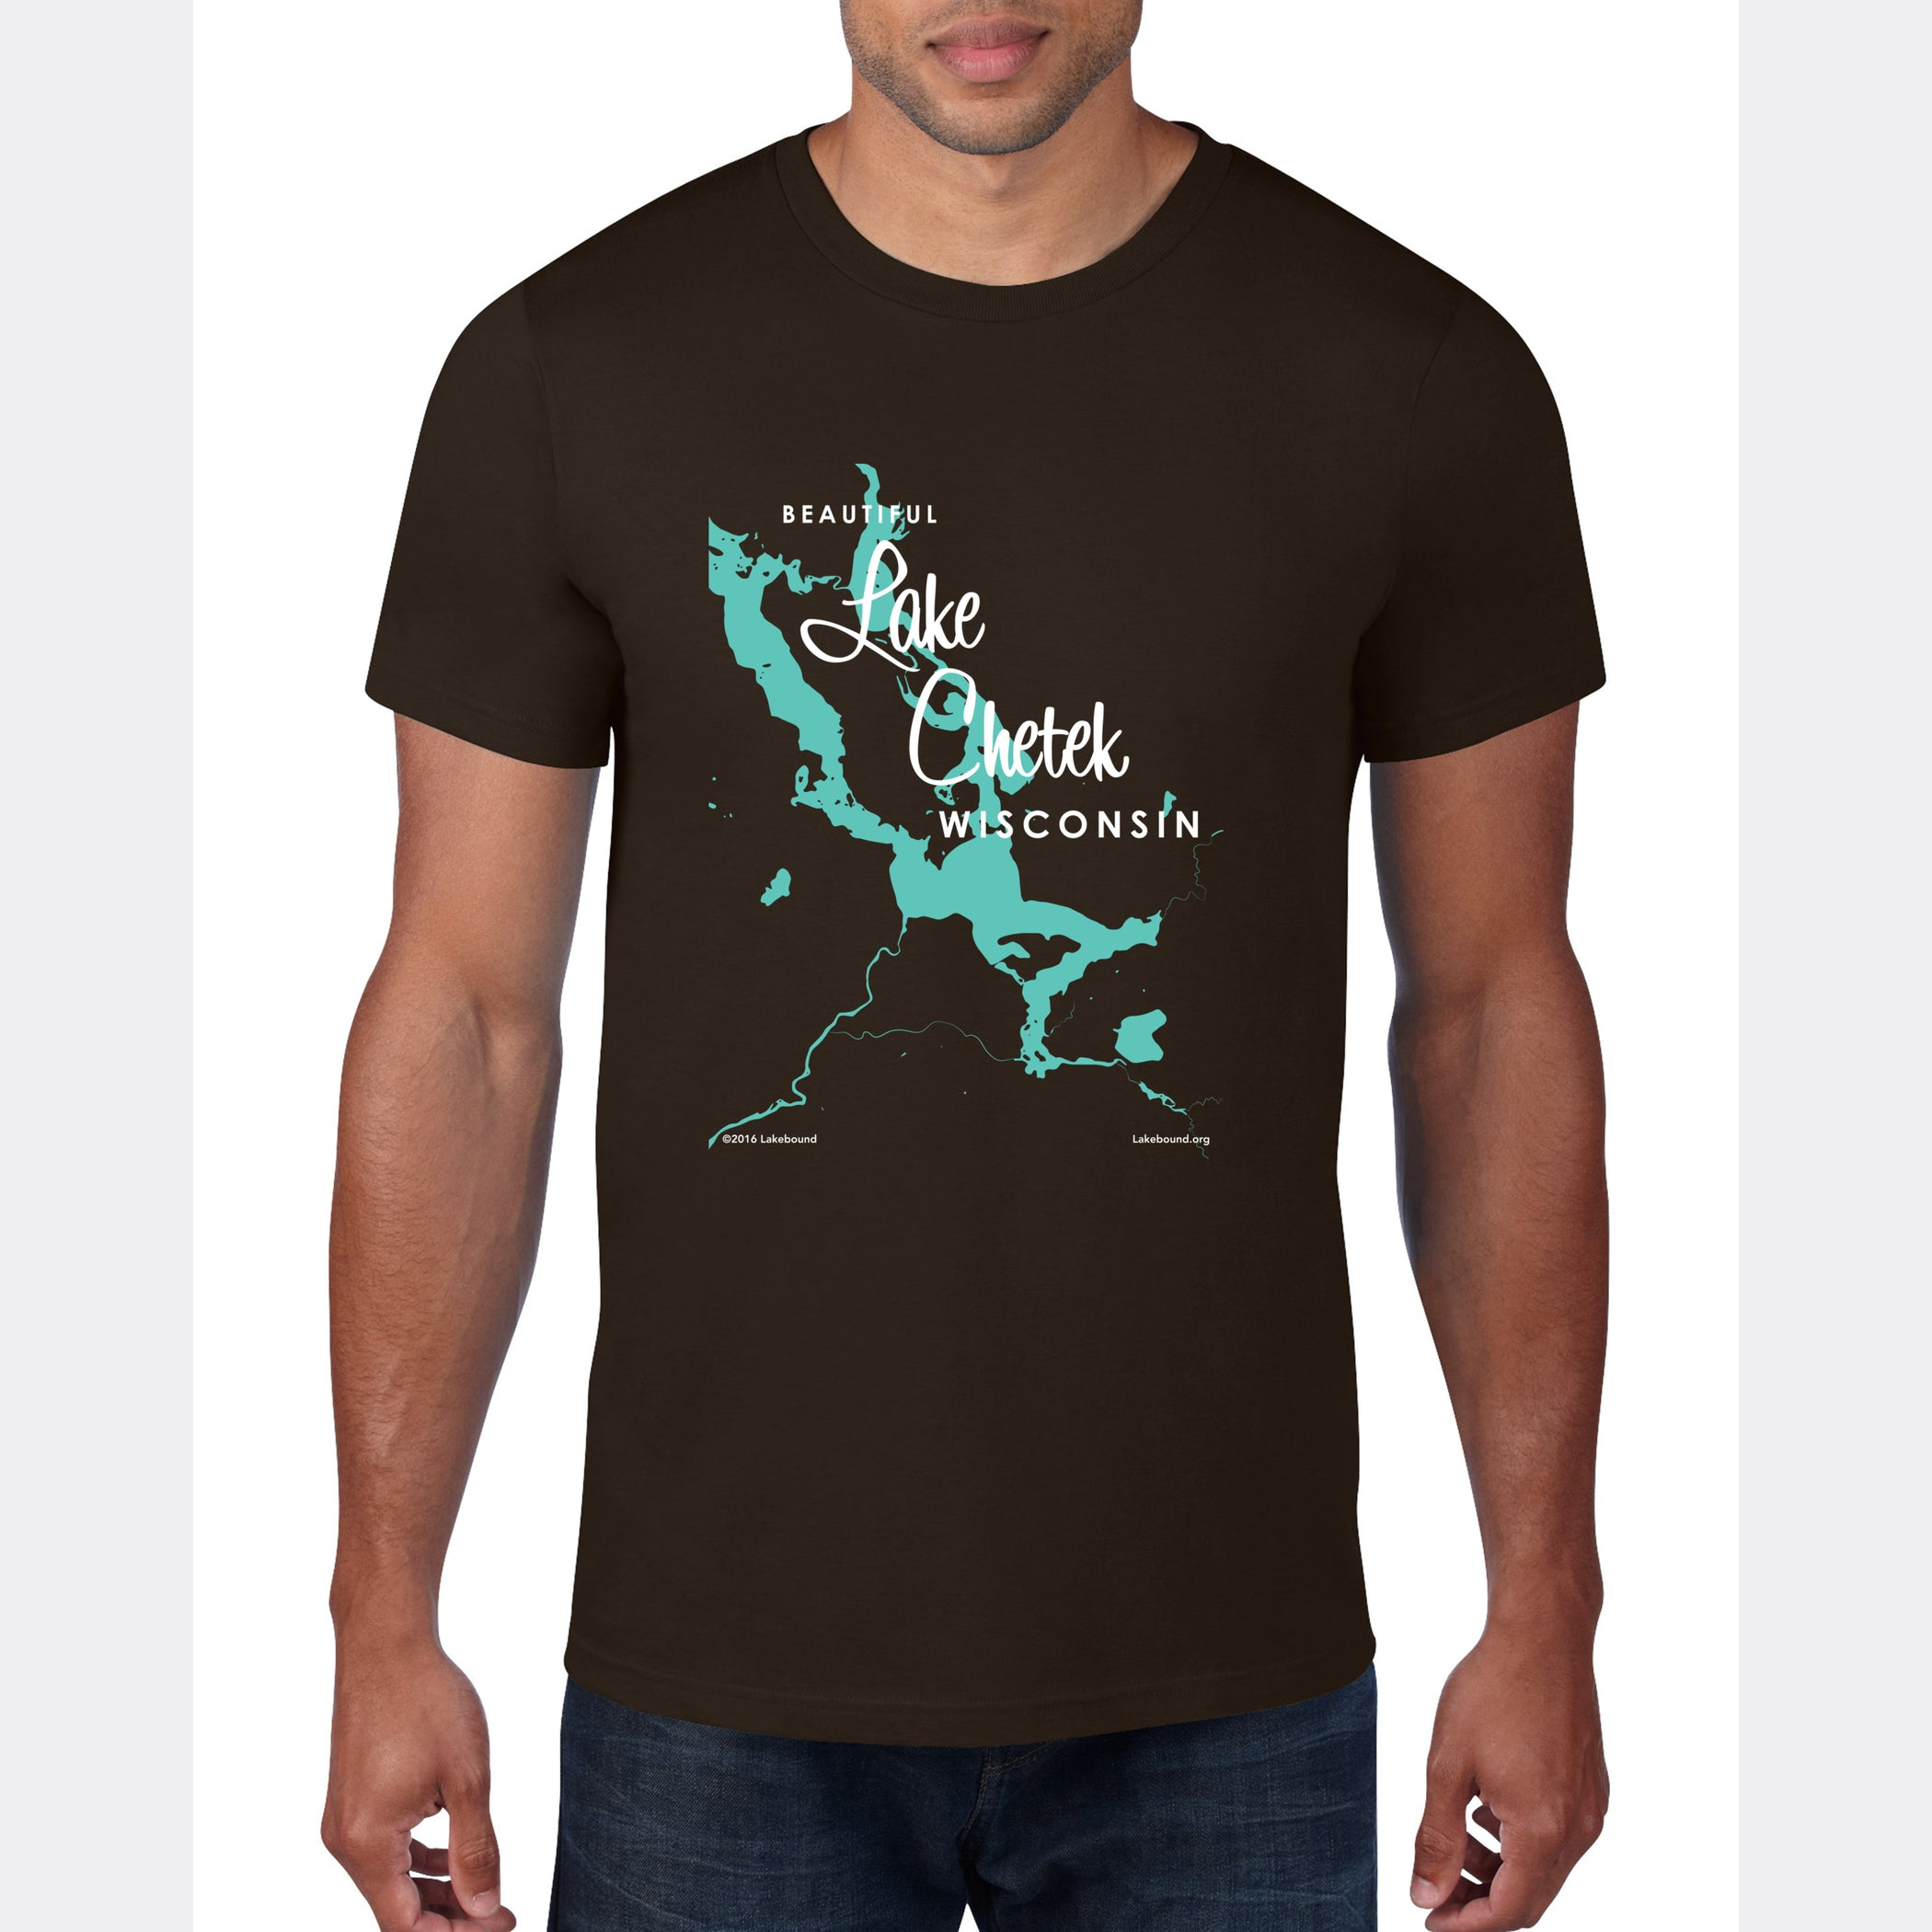 Lake Chetek Wisconsin, T-Shirt